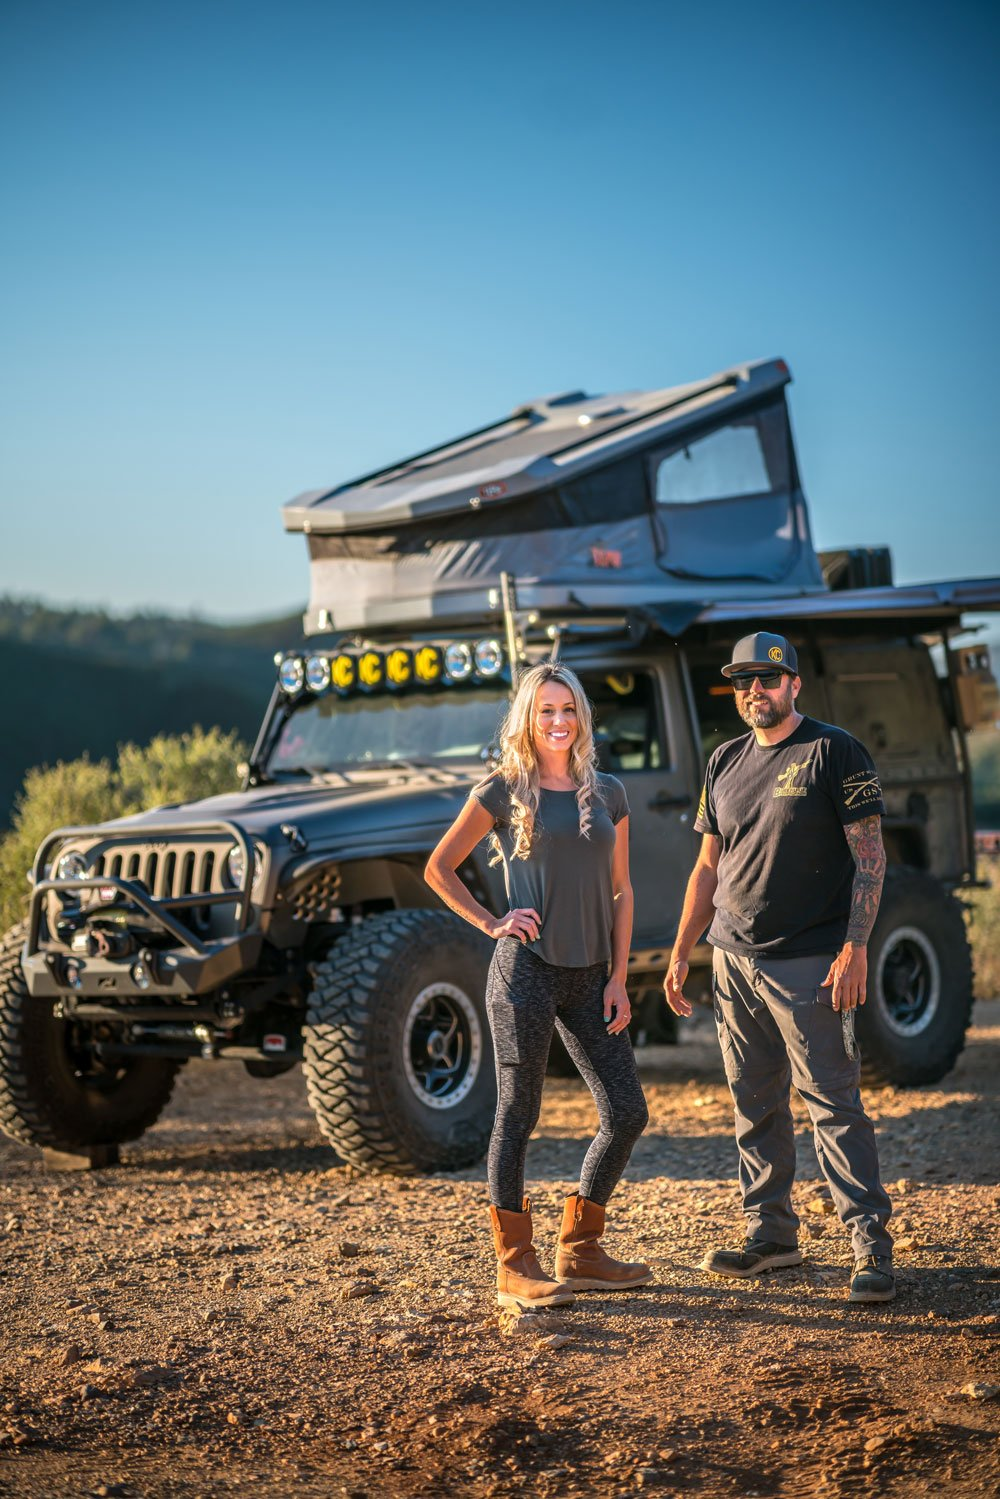 Yolo and Yeti with their Adventure Dream Rig